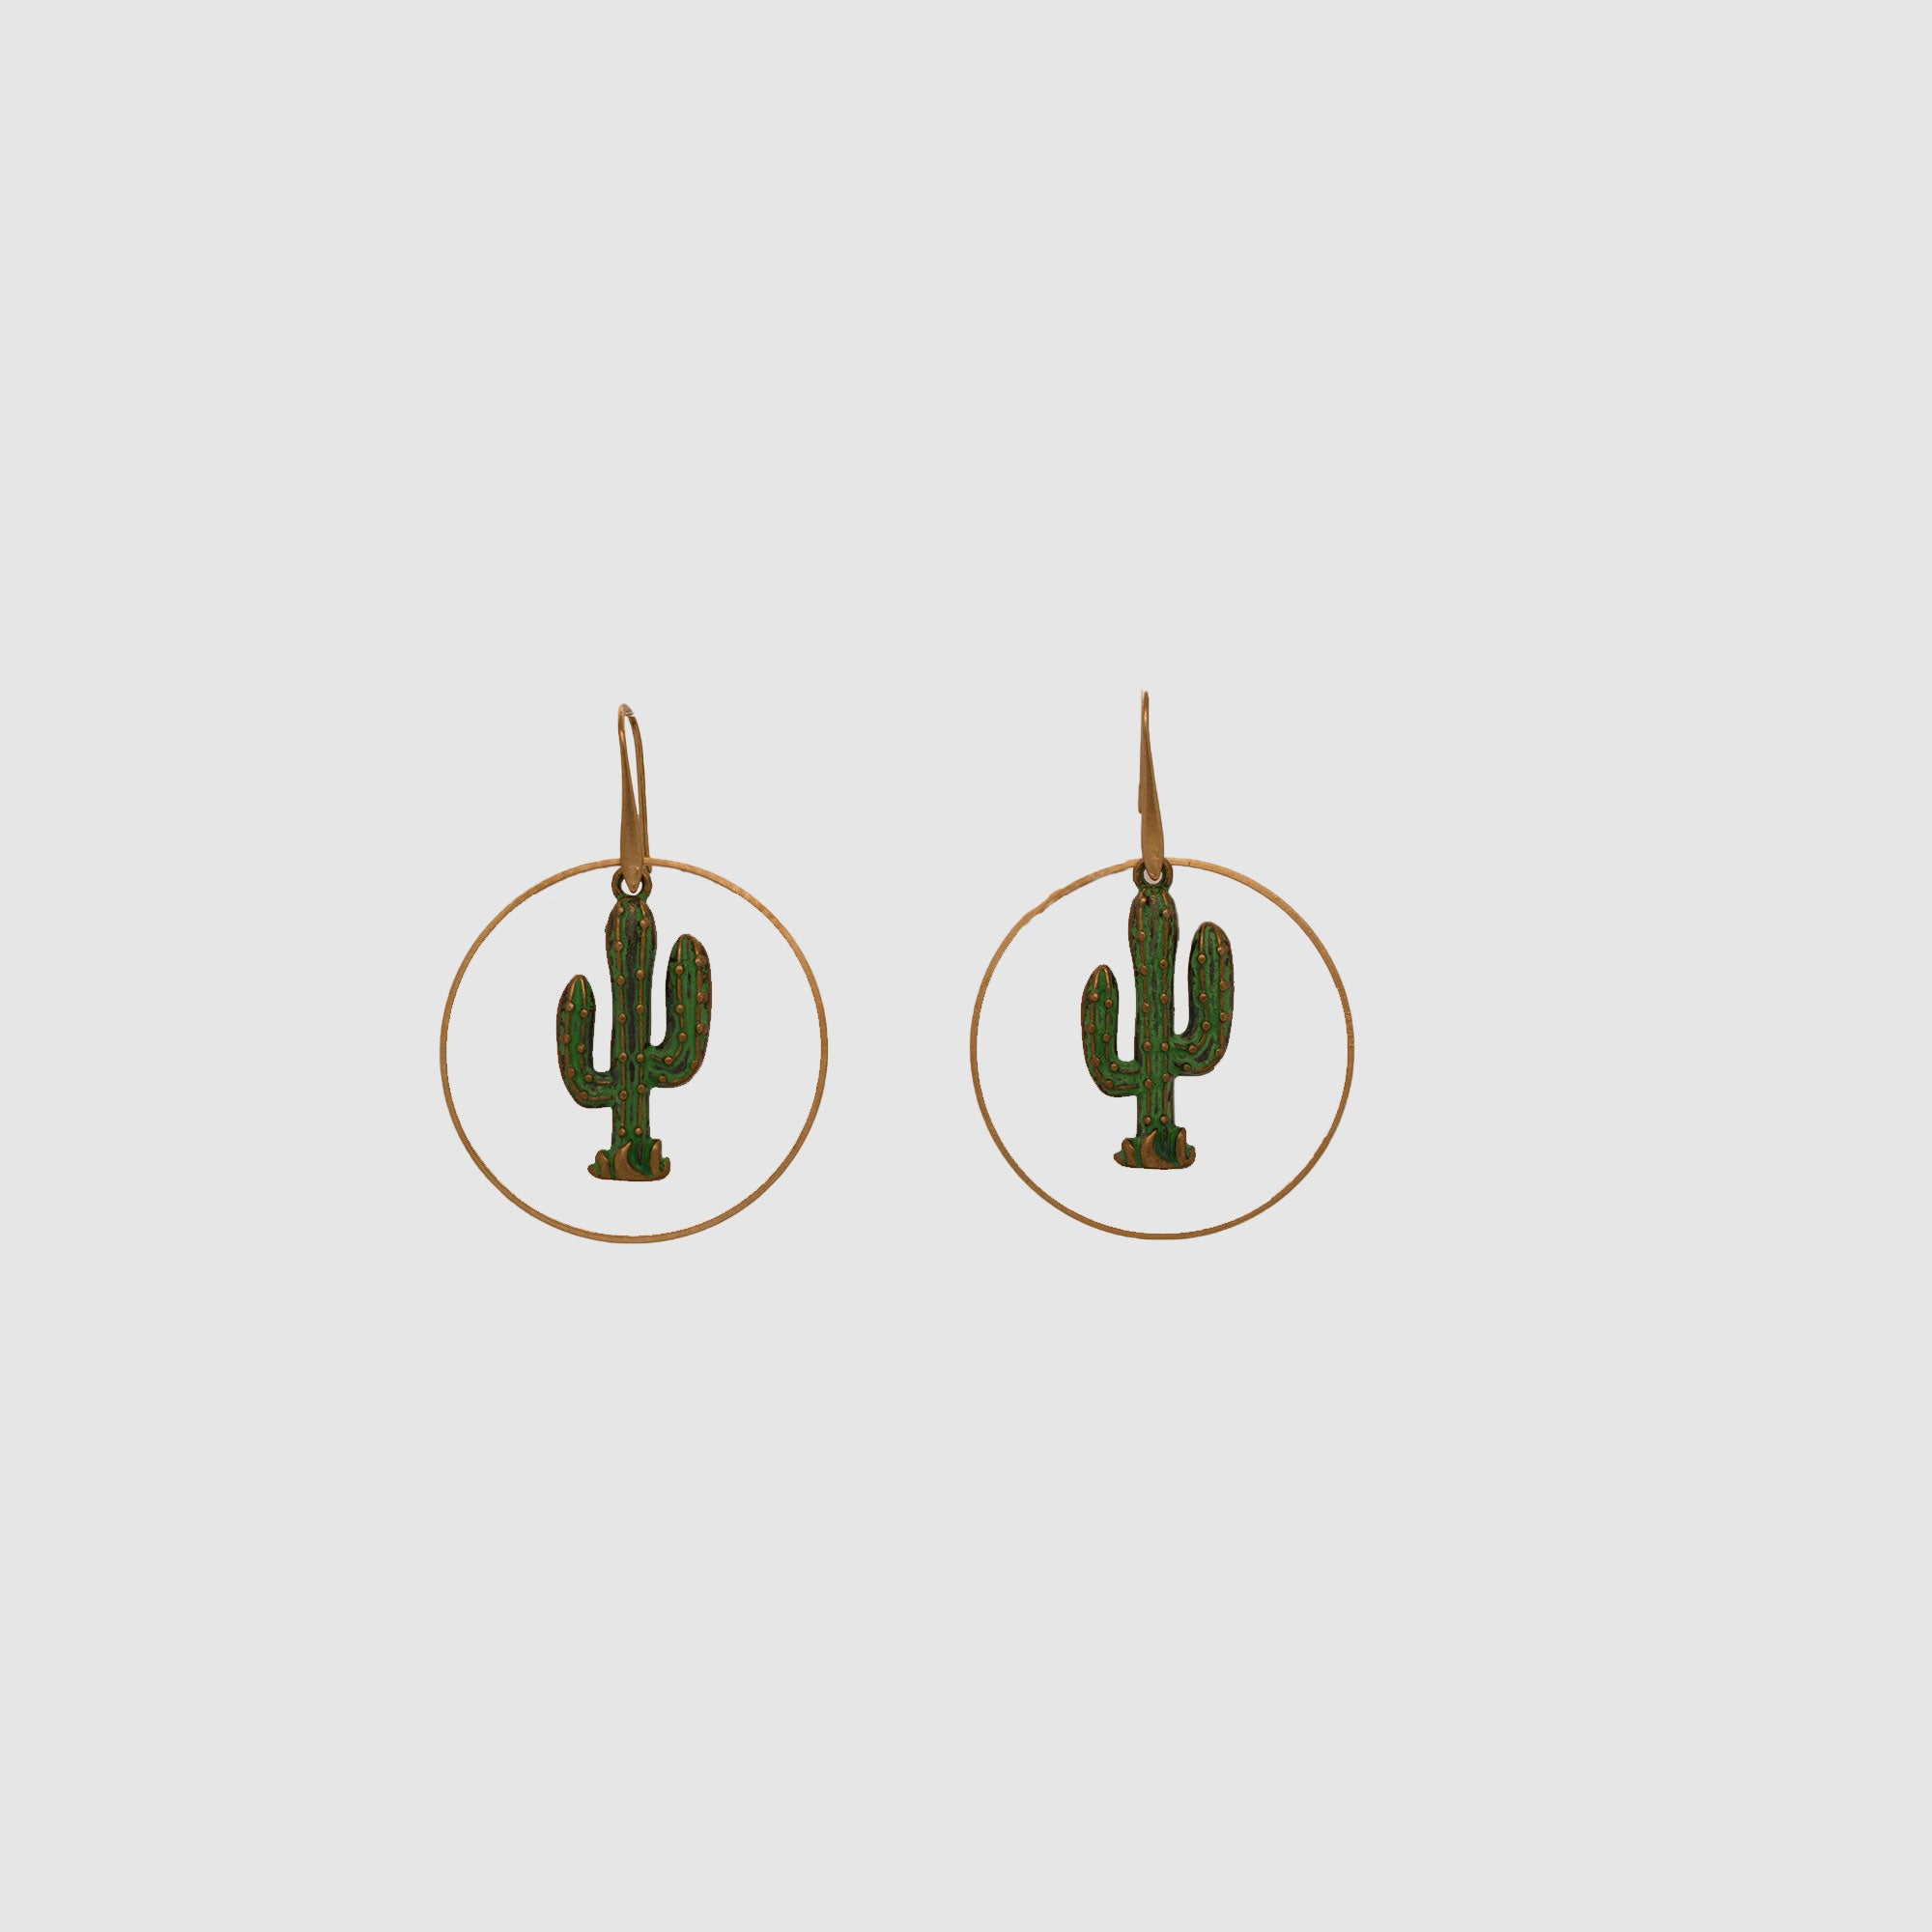 GREAT SUCCESS EARRINGS FOR ALL // DESERT LOVE